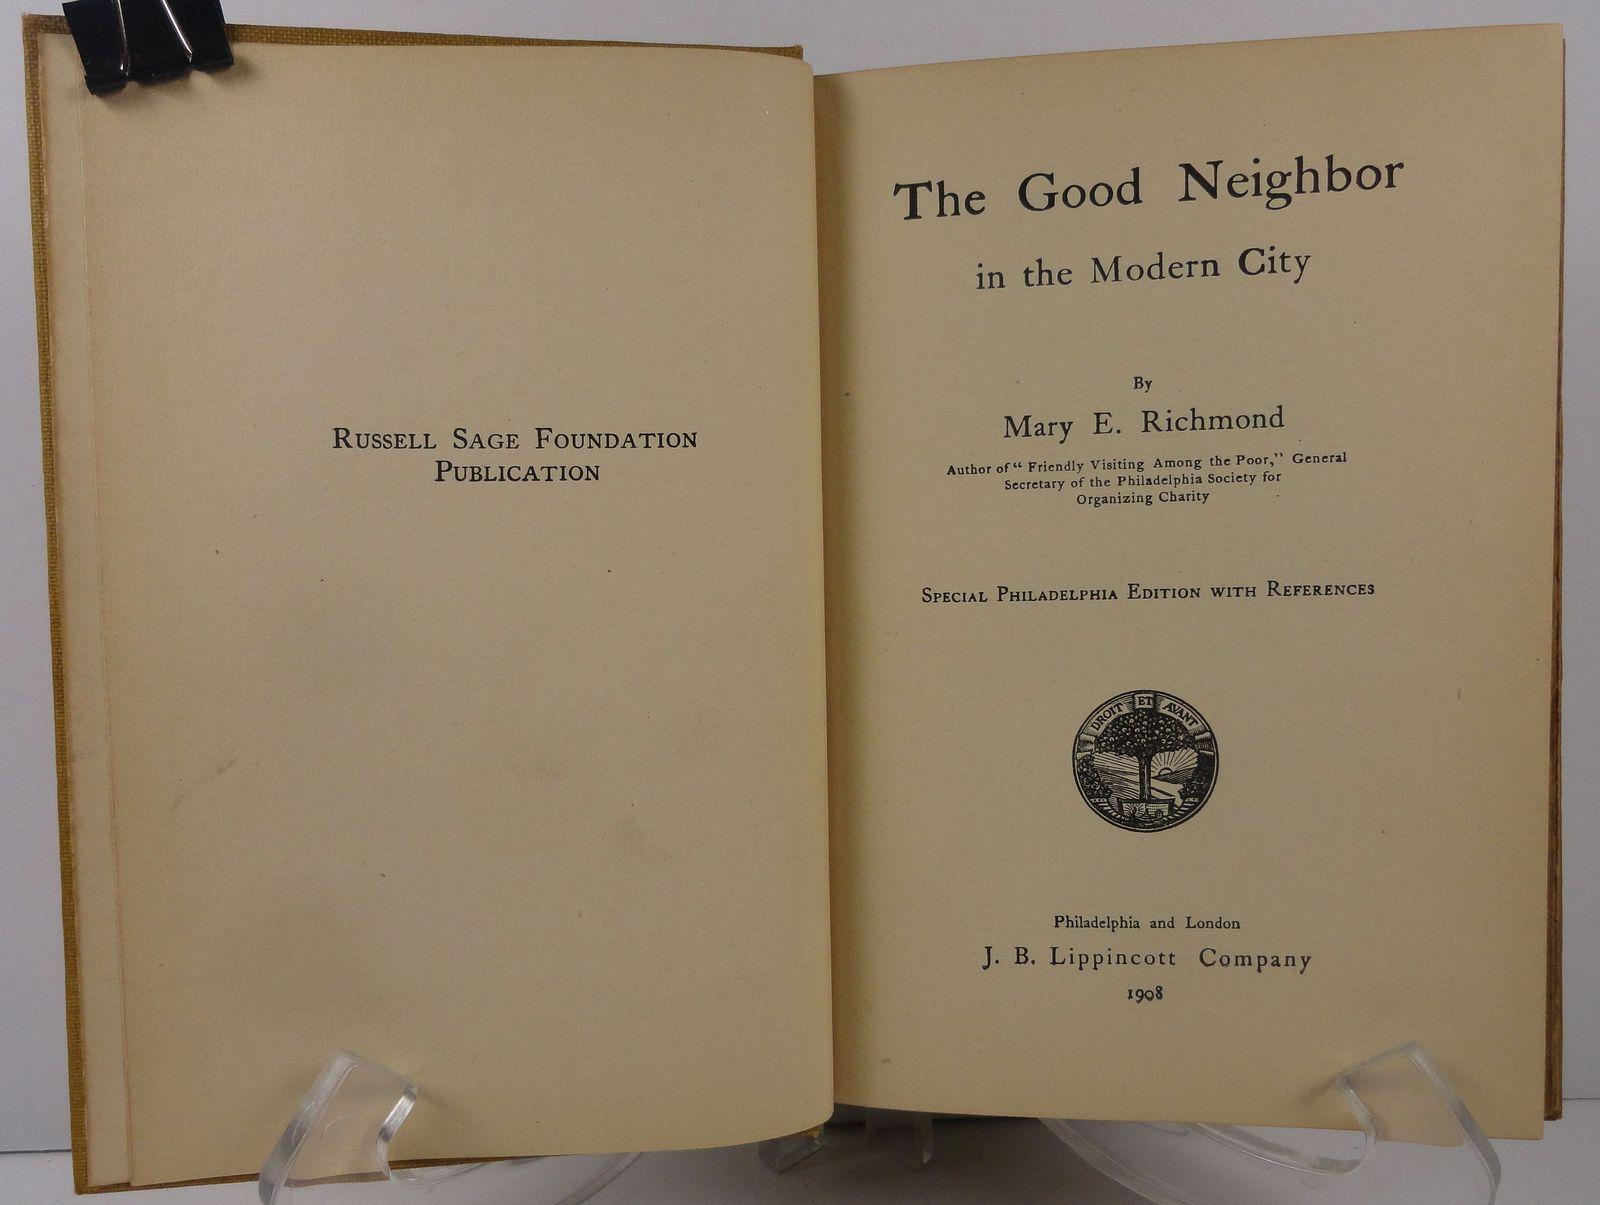 The Good Neighbor Mary E. Richmond 1908 Philadelphia Edition